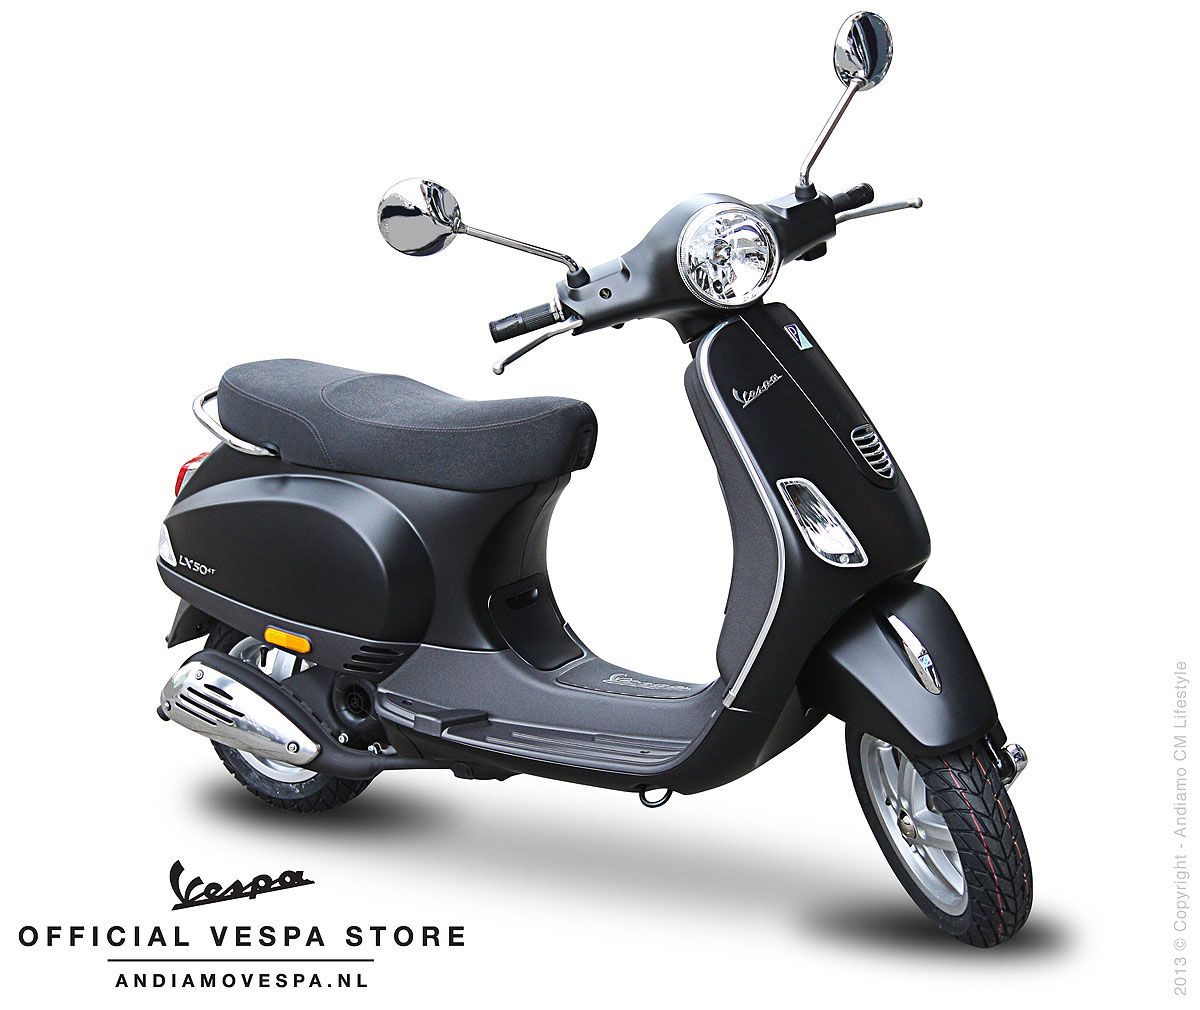 vespa lx 50 vespa scooter pinterest vespa lx vespa and scooters. Black Bedroom Furniture Sets. Home Design Ideas